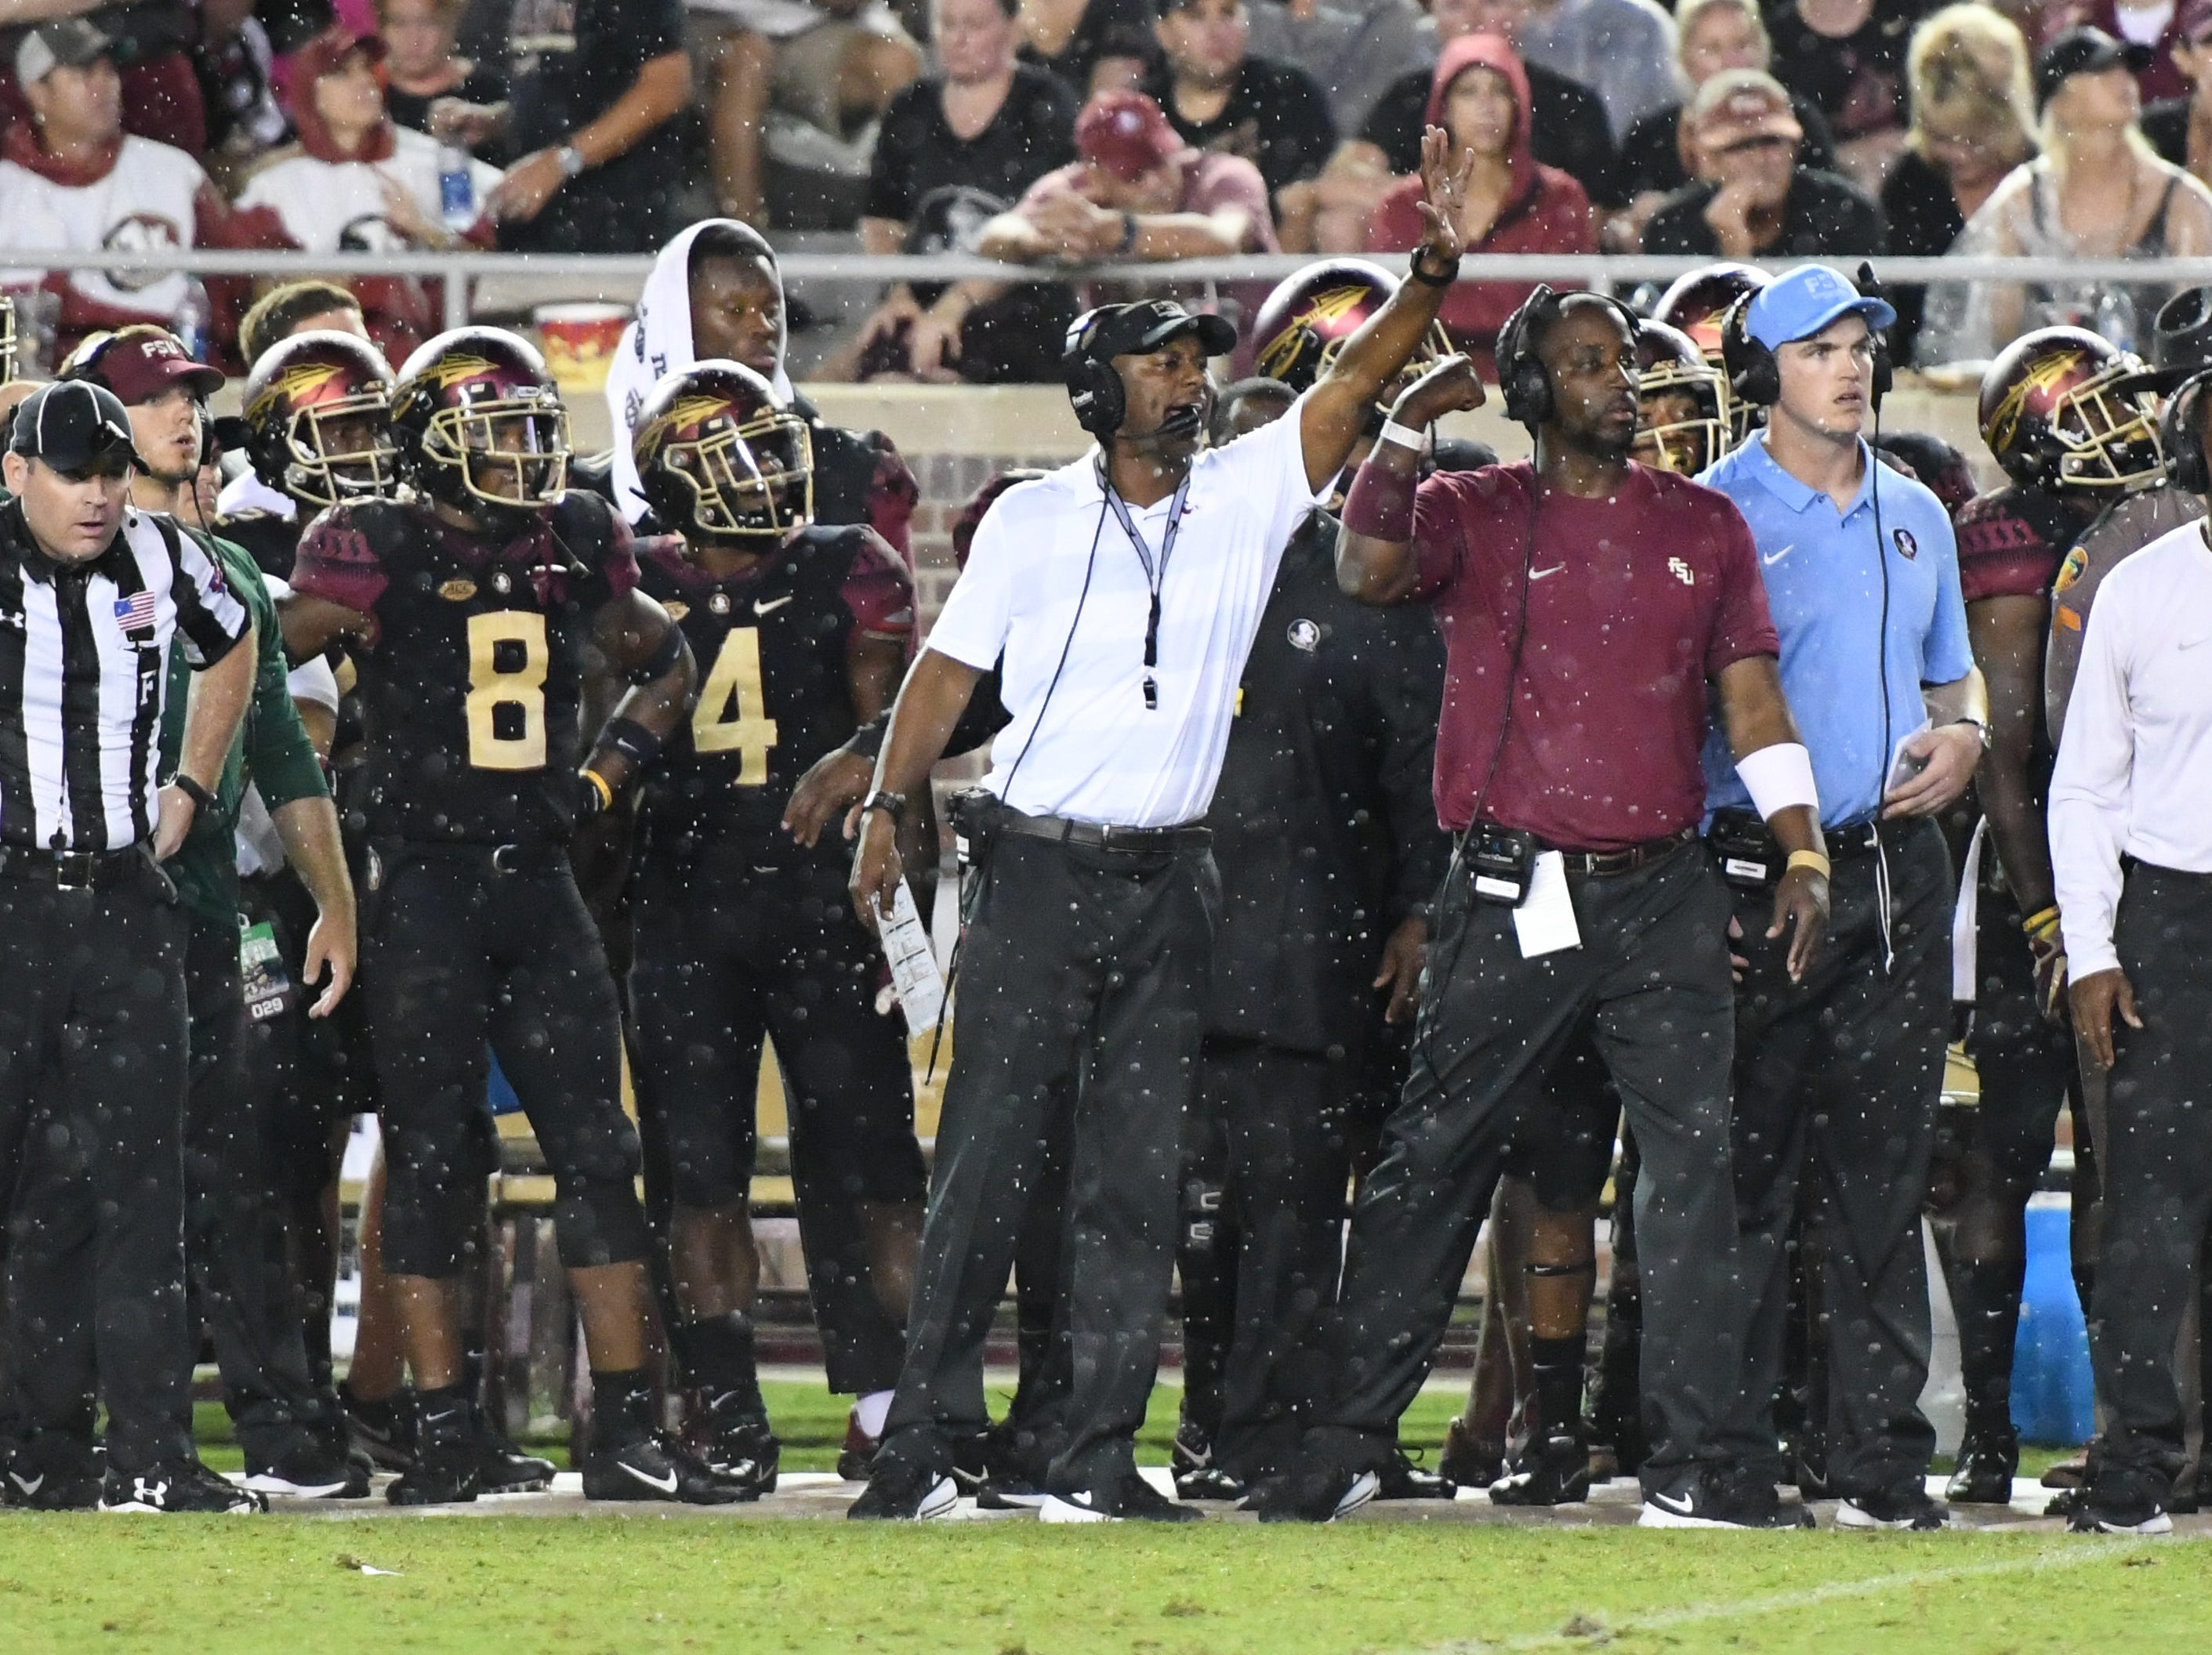 FSU head Coach Willie Taggart calling a play from the FSU sideline during the third quarter of FSU's matchup against Virginia Tech on Monday night.